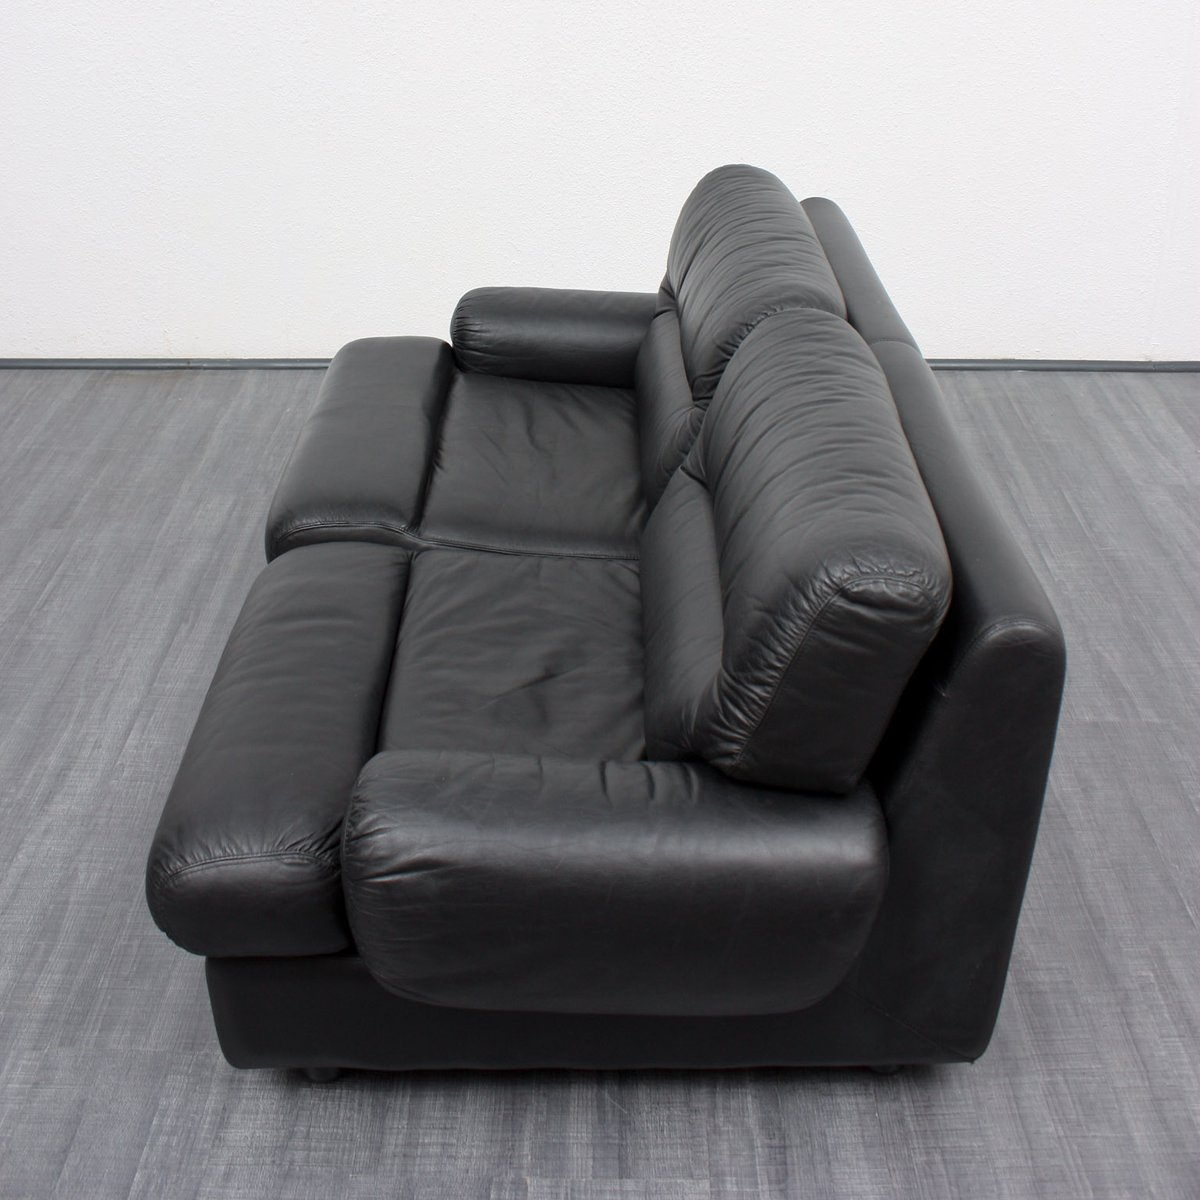 Vintage Black Leather 2 Seater Lounge Sofa 1970s For Sale At Pamono